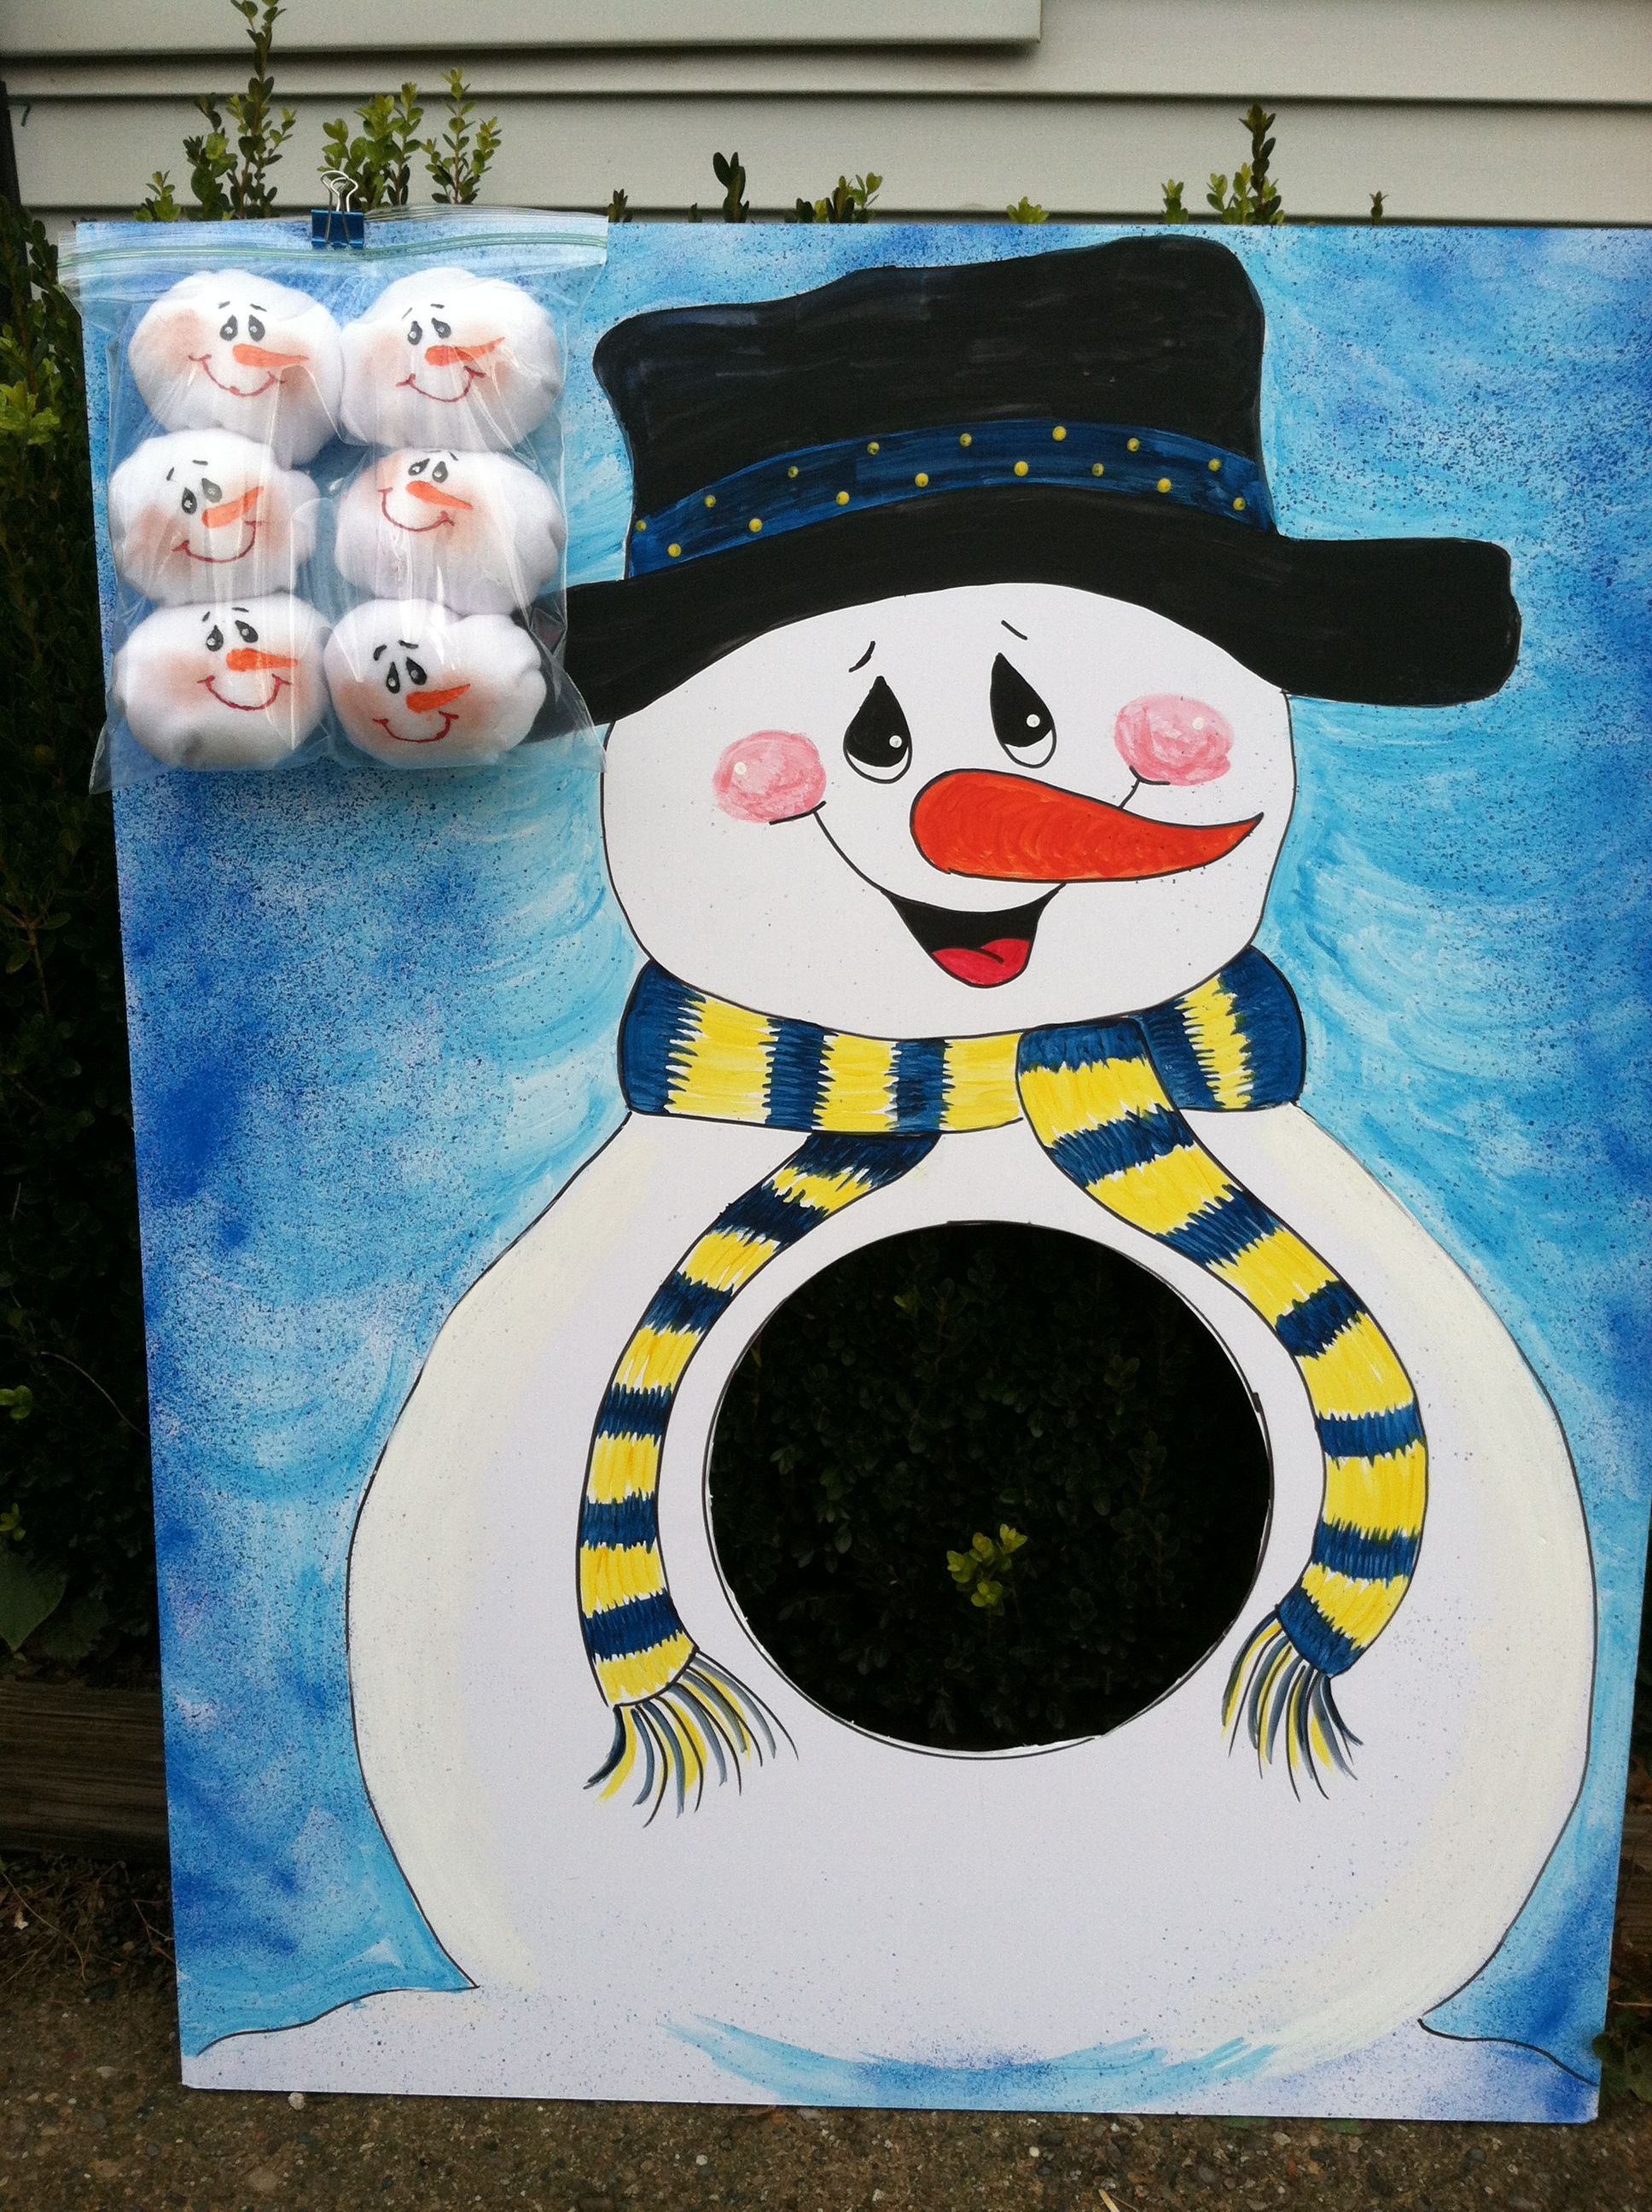 Kindergarten Christmas Party Ideas Part - 21: Magic Kid Party Games That You Can Easy Make : Kid Christmas Party Games.